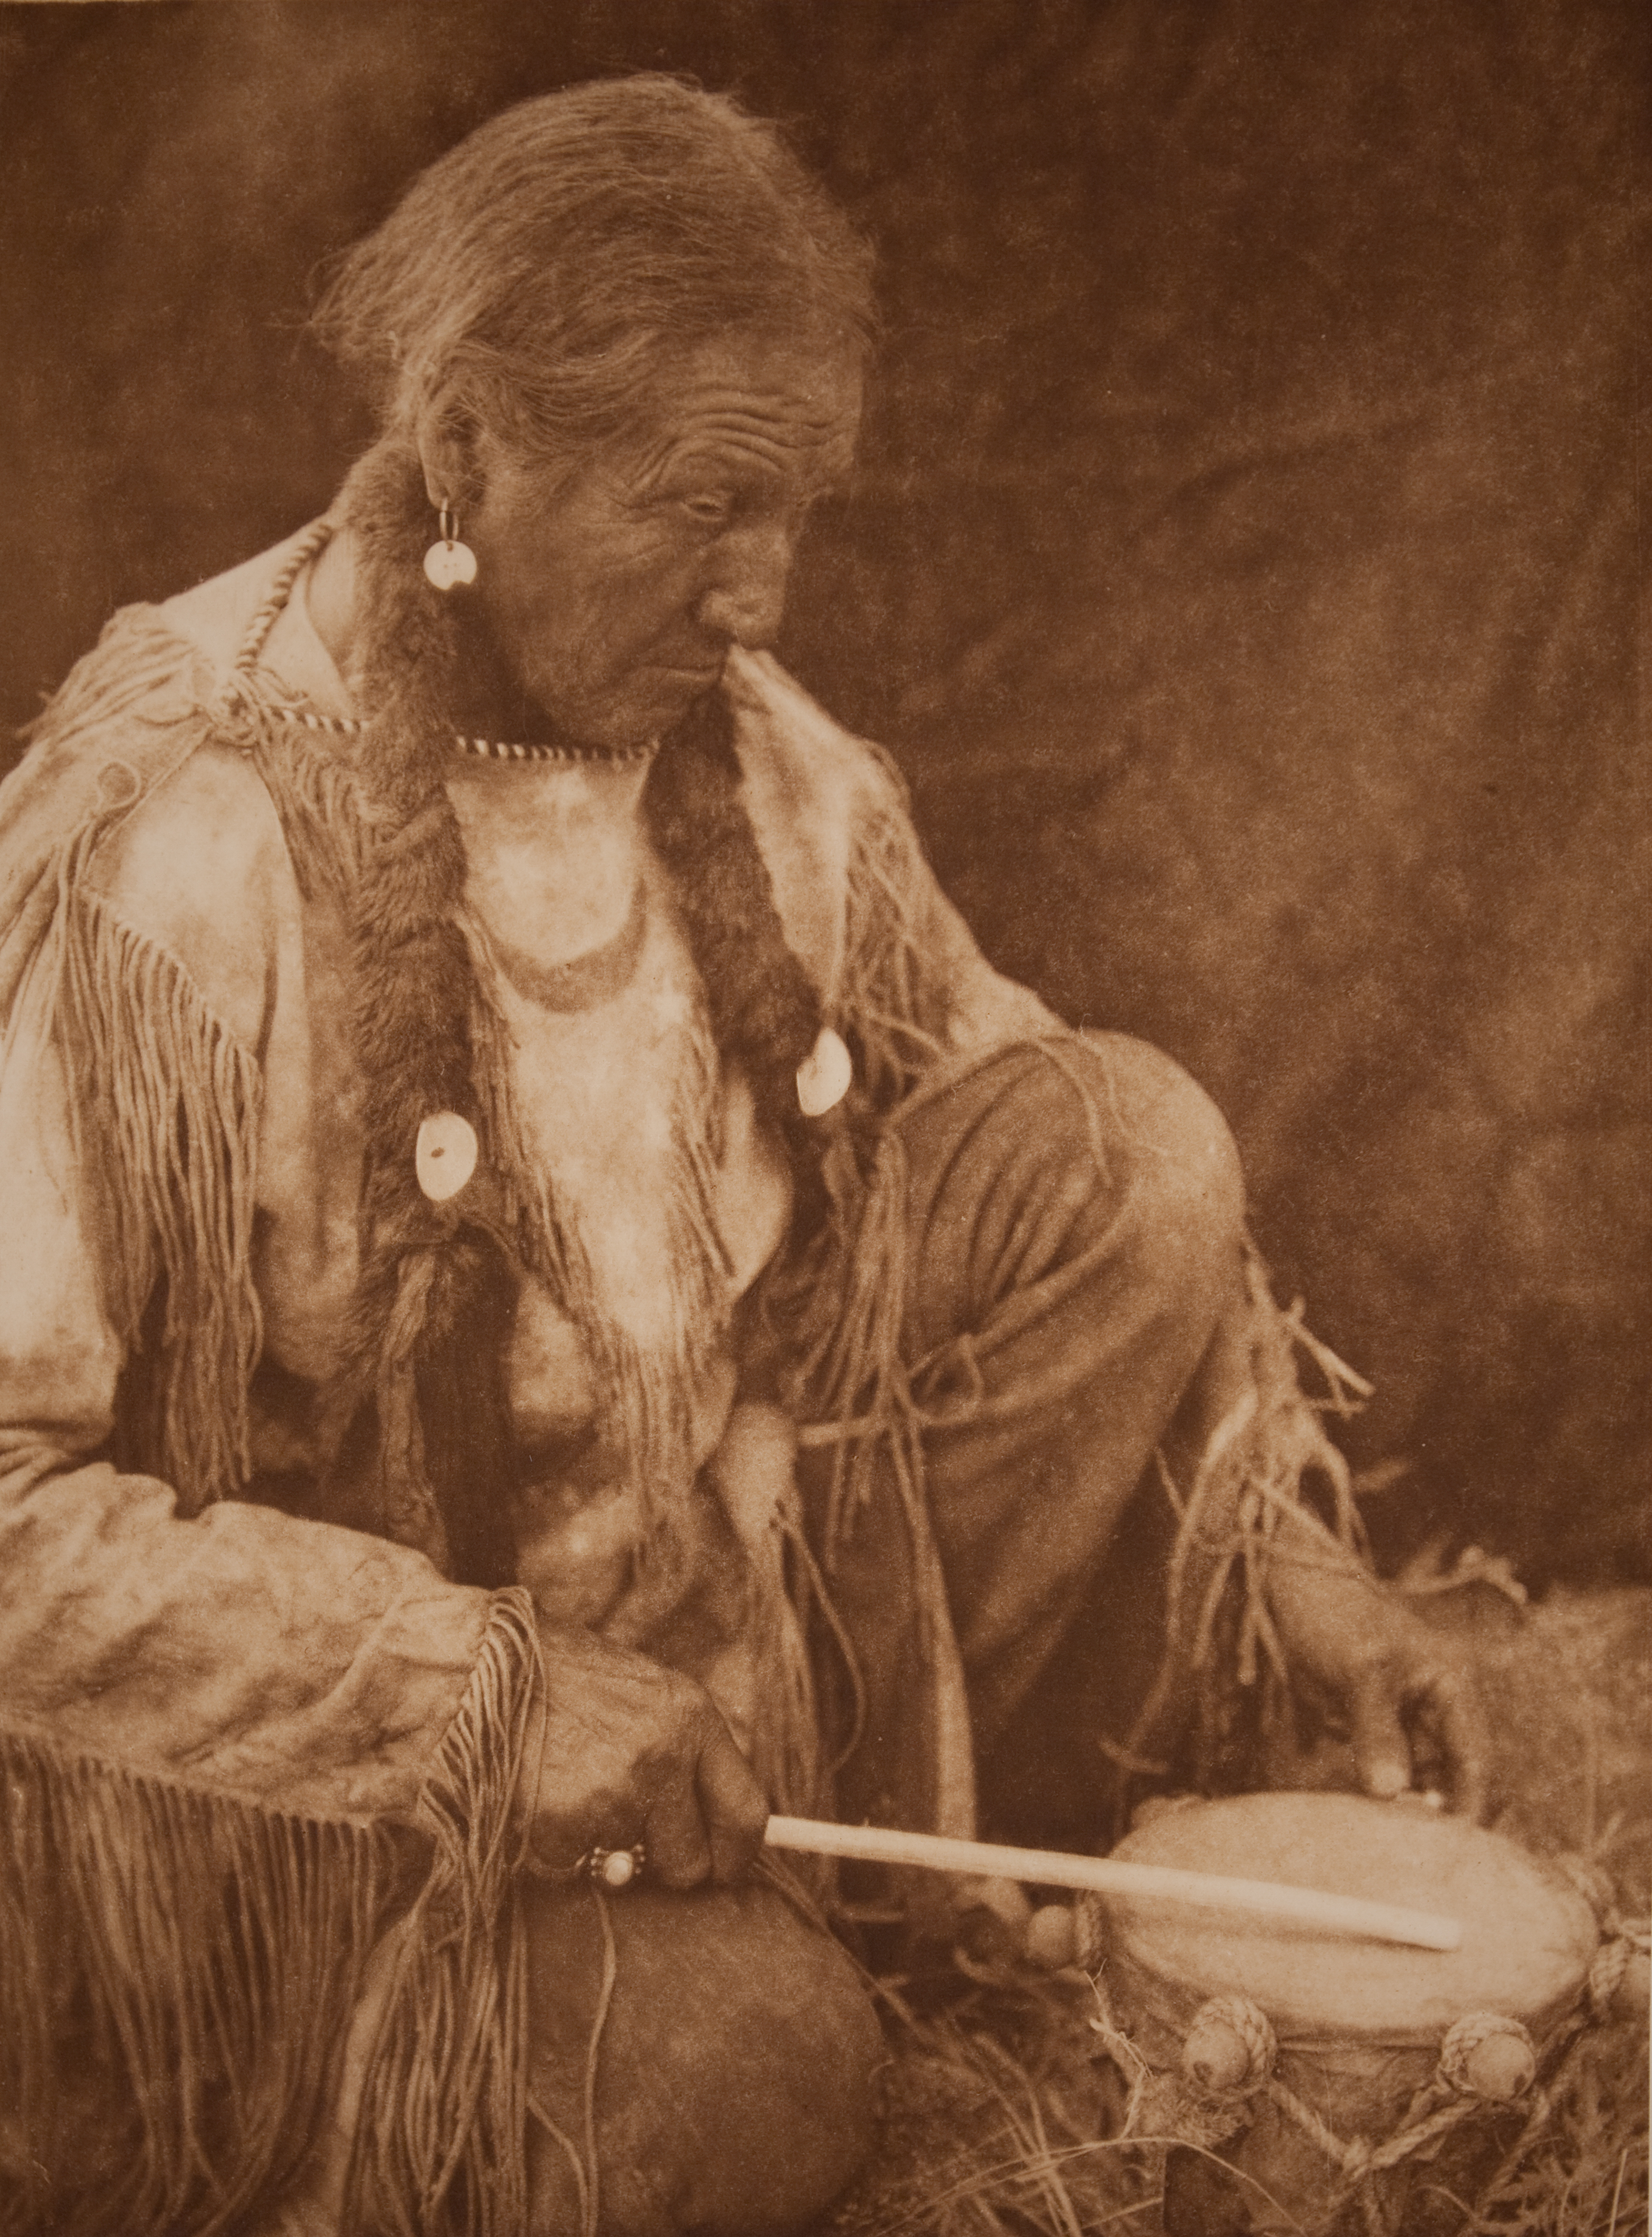 the widespread belief in god by the native americans Mormon tradition answers an old theological problem—the position of america in a biblical worldview—by casting native americans as the 10 lost tribes of israel.